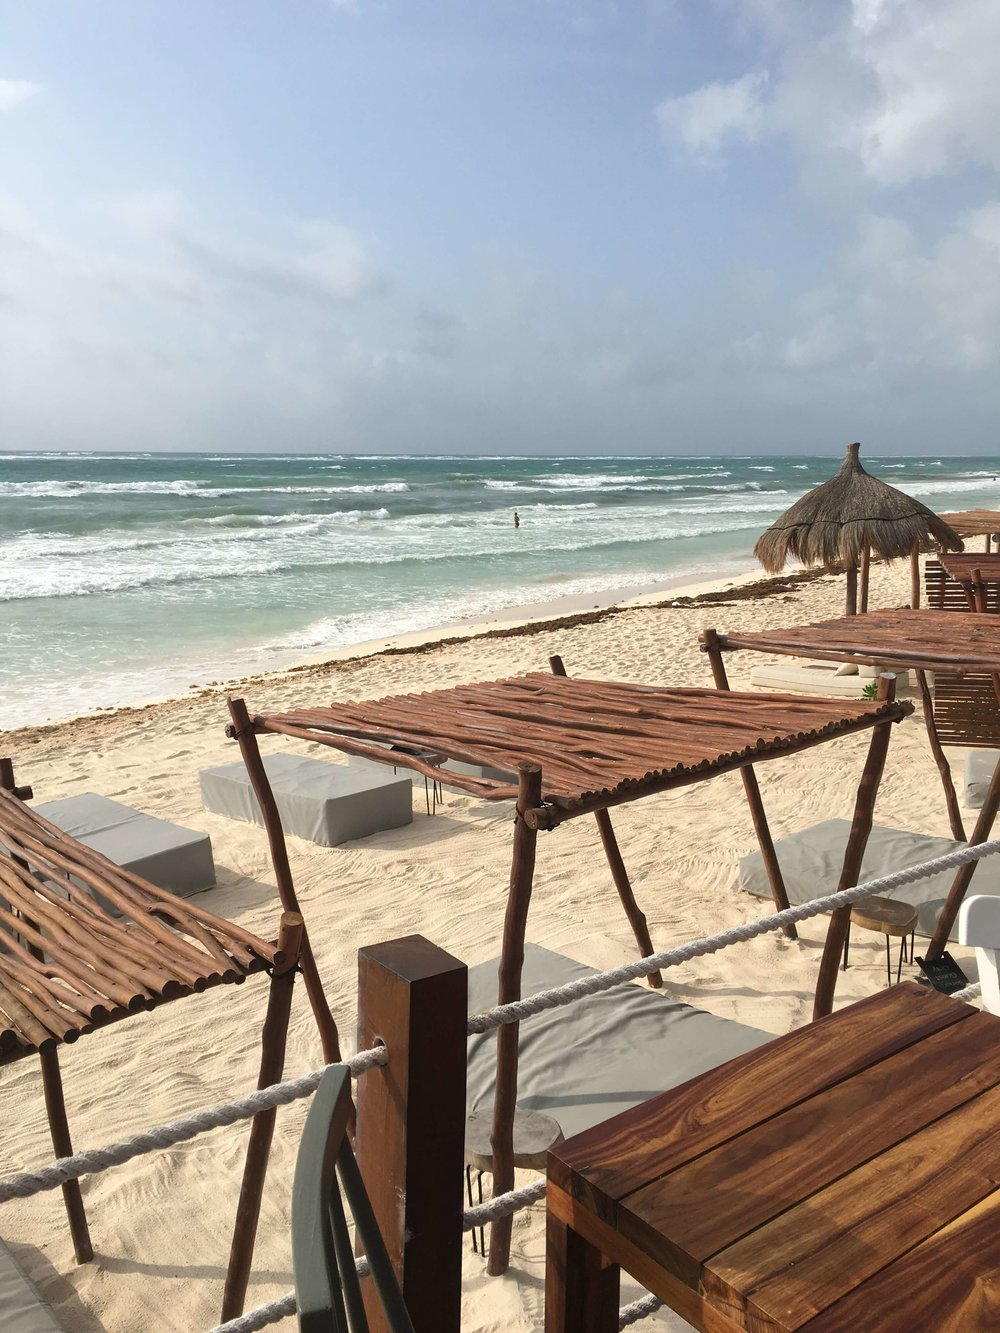 Tulum April 2017 - Apr 29, 8 34 30 AM (1)-220.jpg